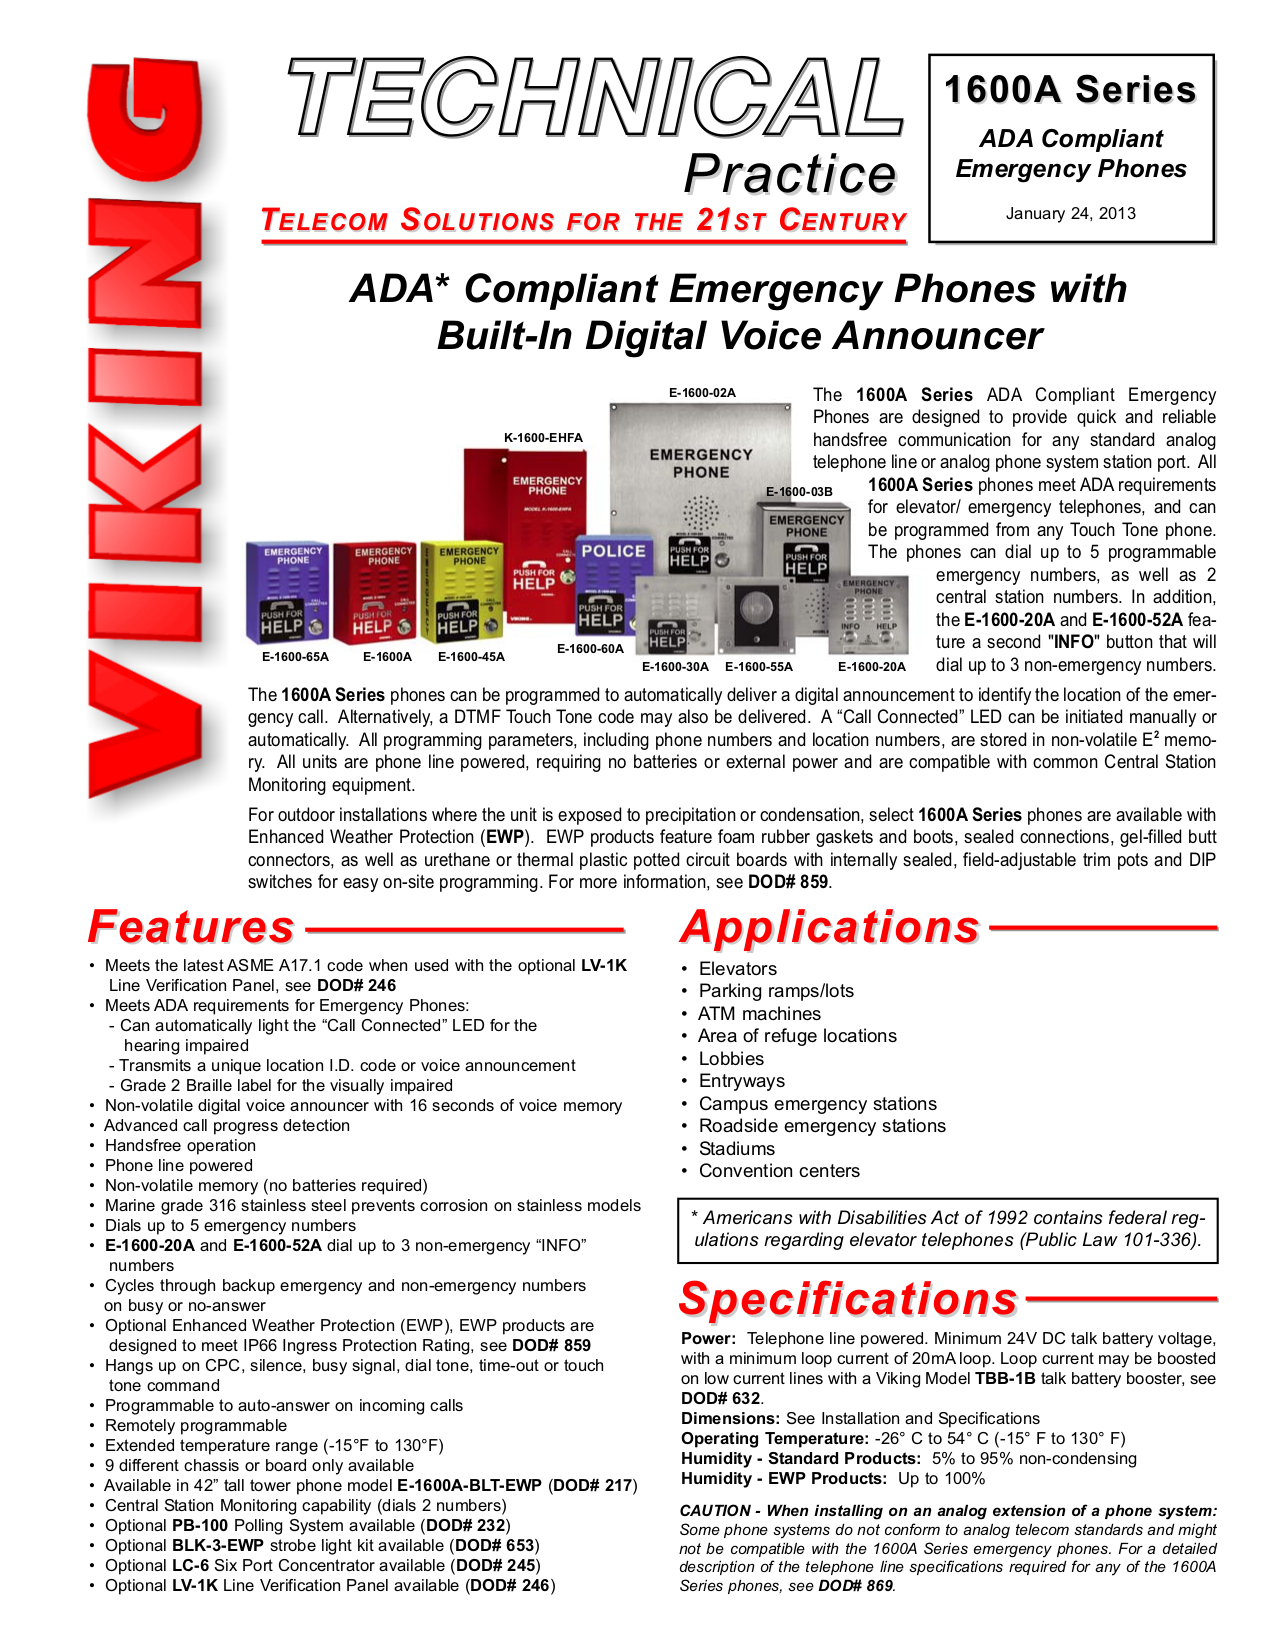 pdf for Viking Other E-1600-30A Emergency Phones manual